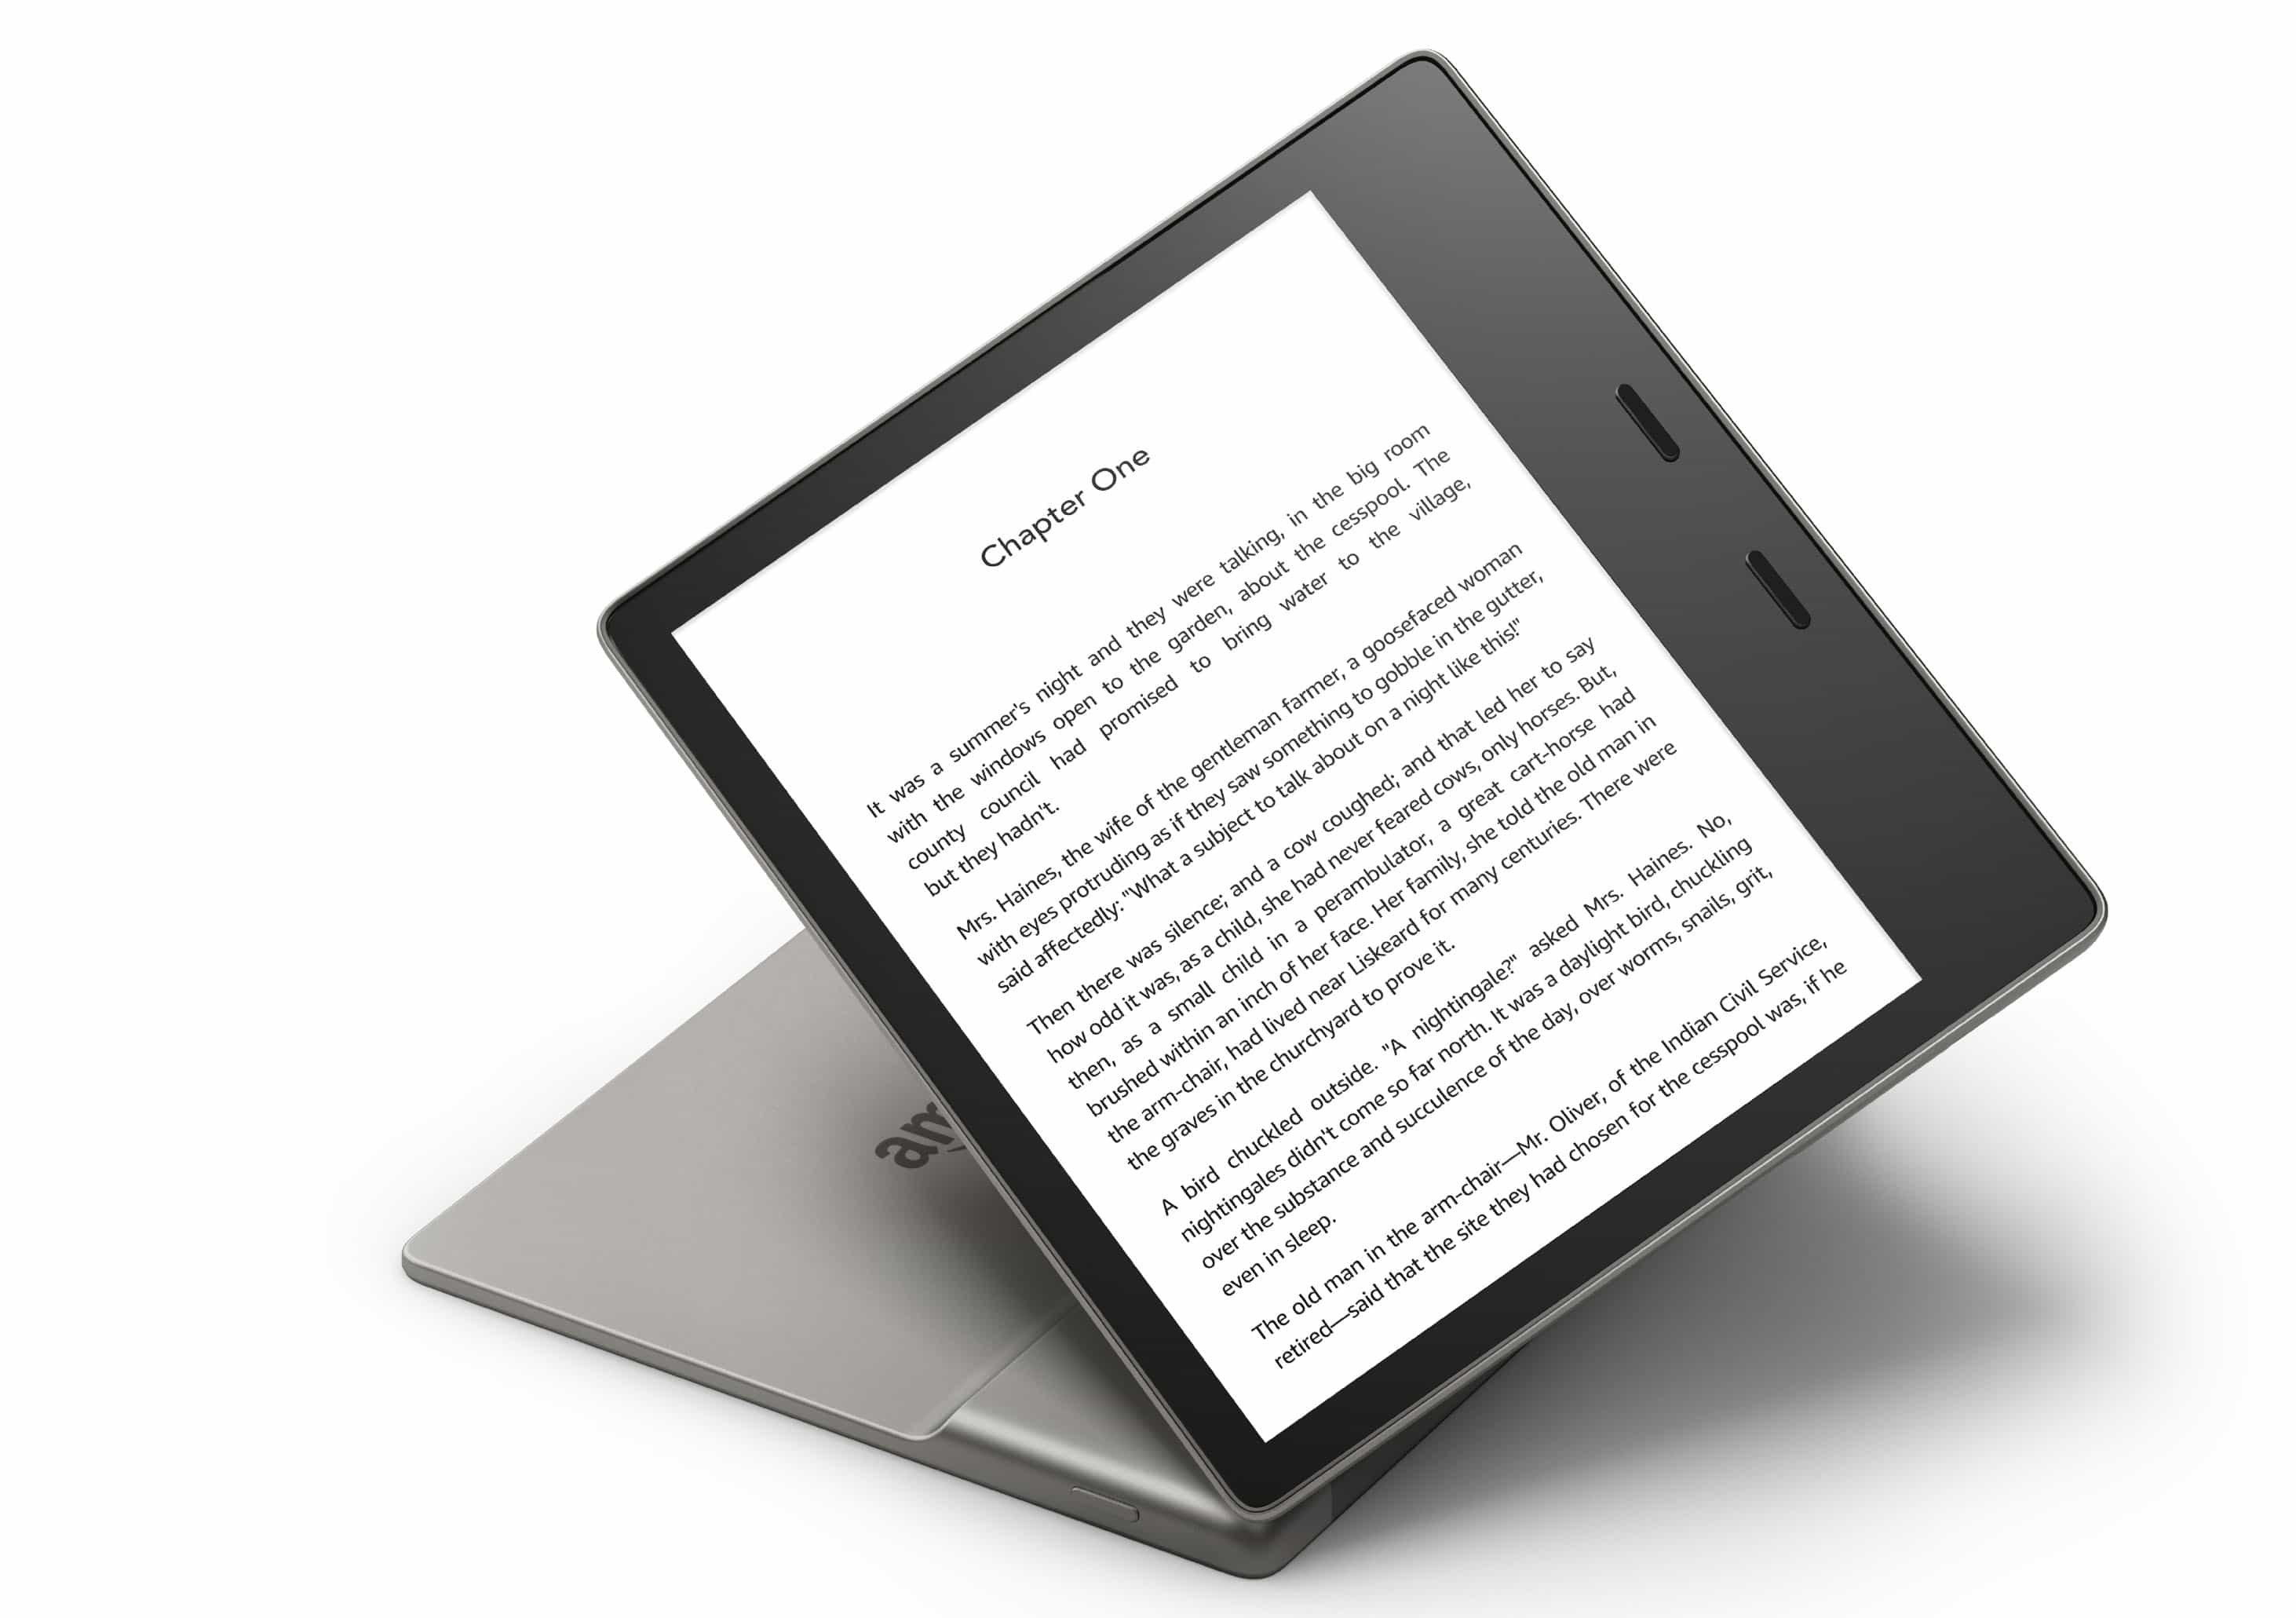 Amazon Kindle Oasis 3 has a color temperature system